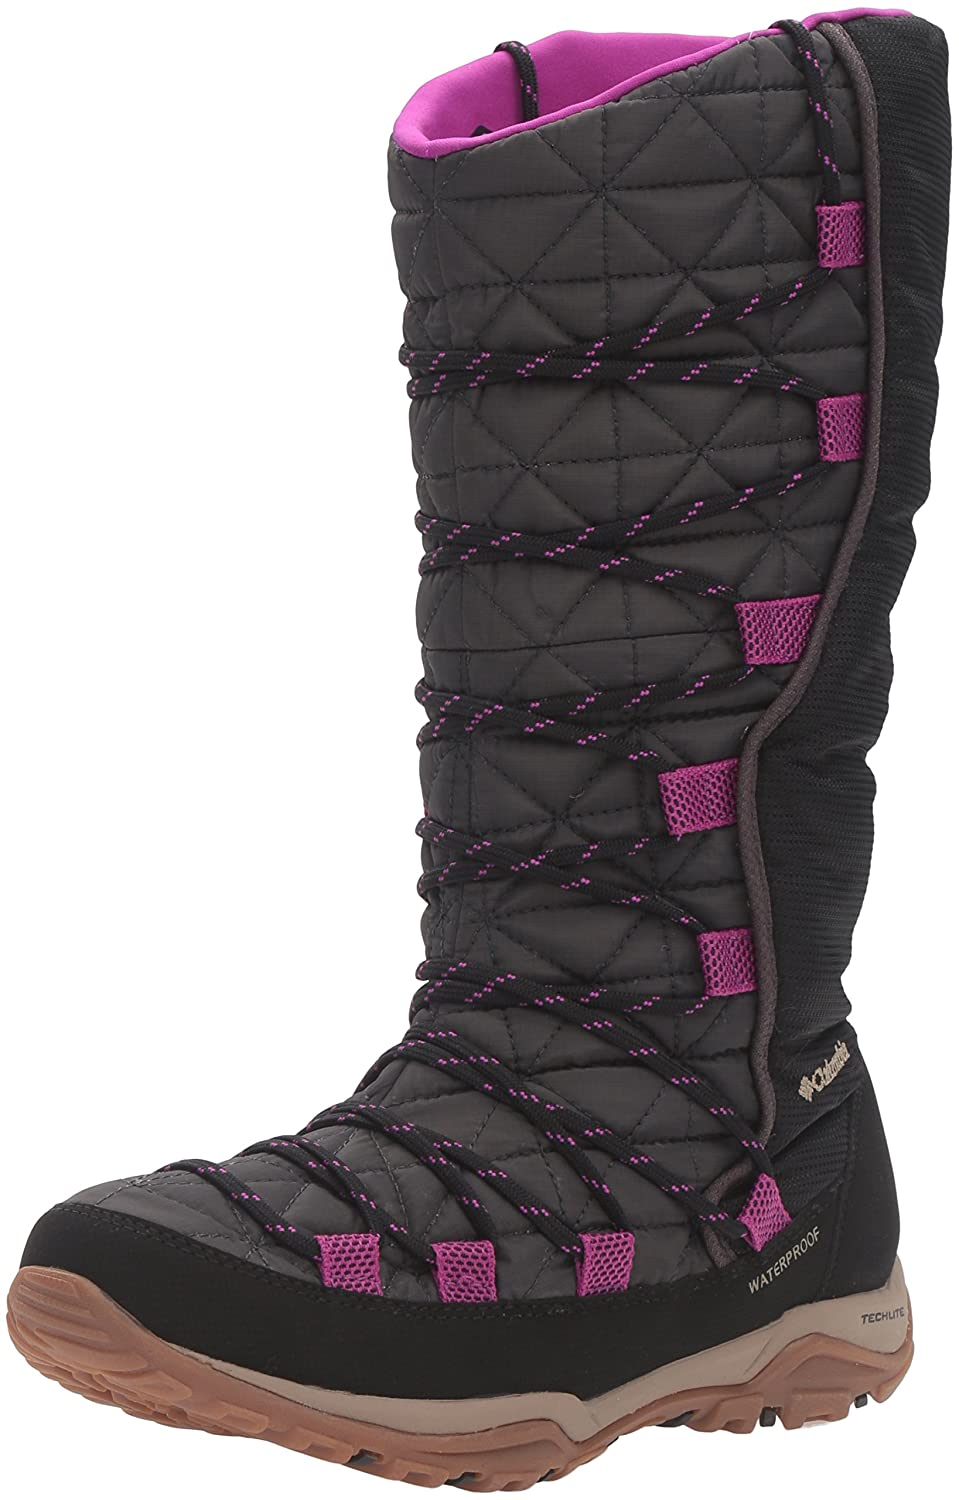 Columbia Women's Loveland Omni-Heat Snow Boot B0183NZ0N2 7 B(M) US|Shark/Bright Plum